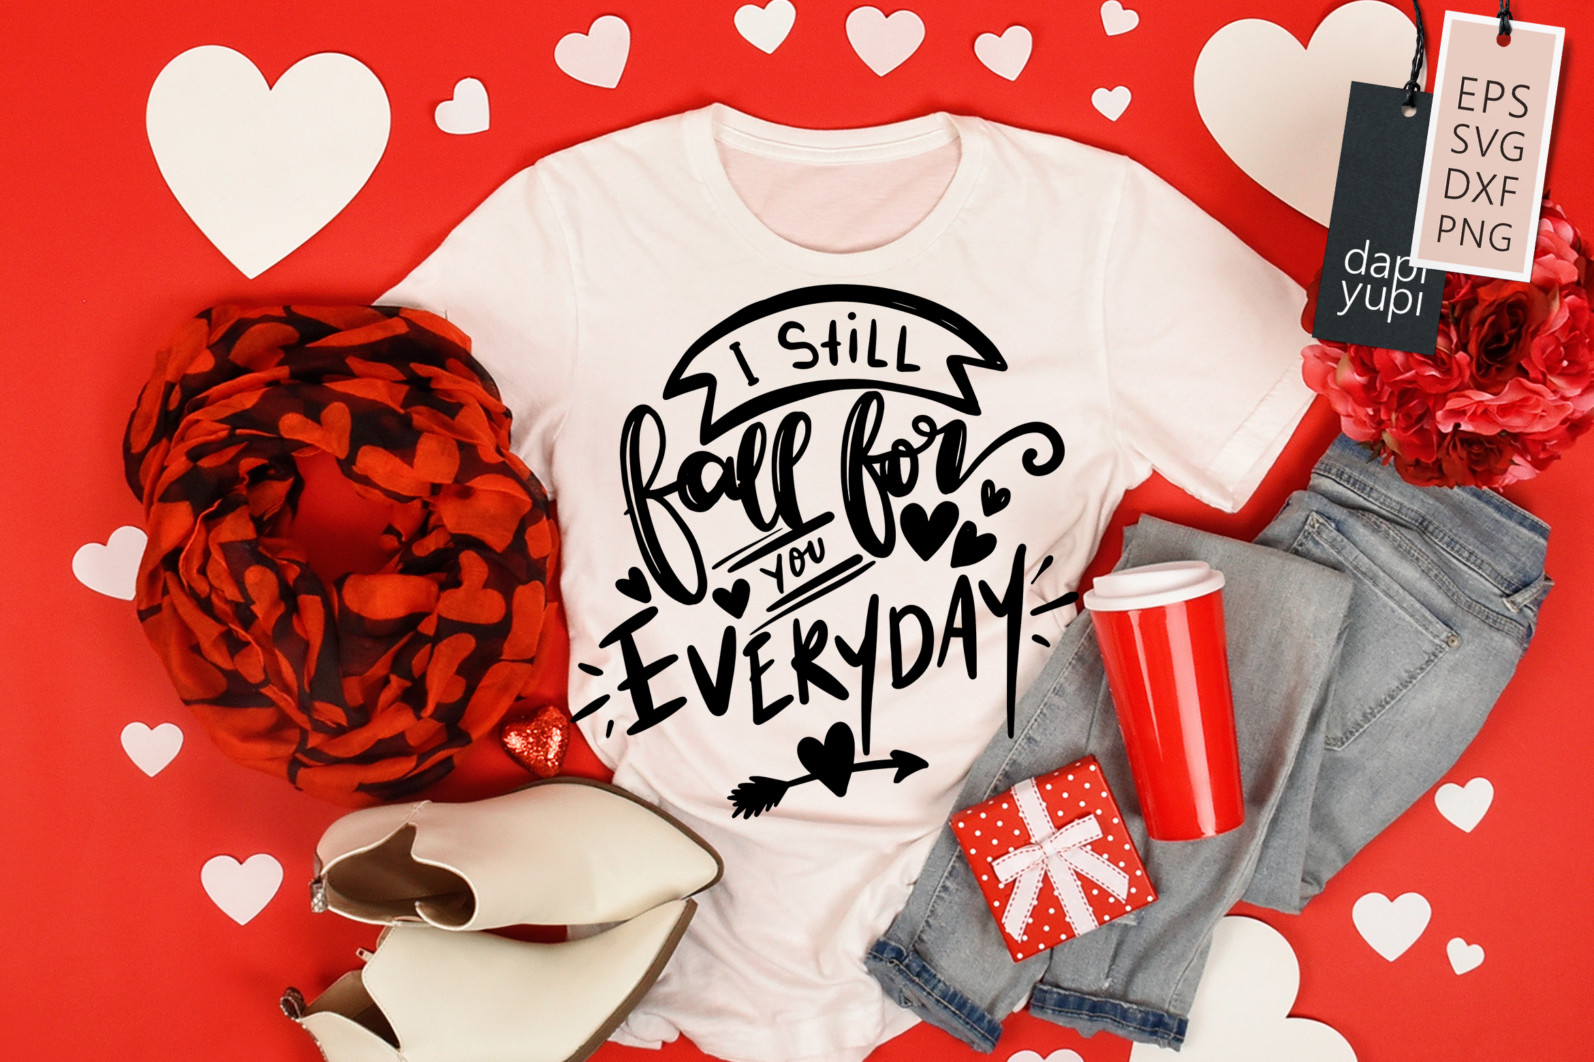 Love Quotes SVG I Still Fall For You Everyday - love6a -